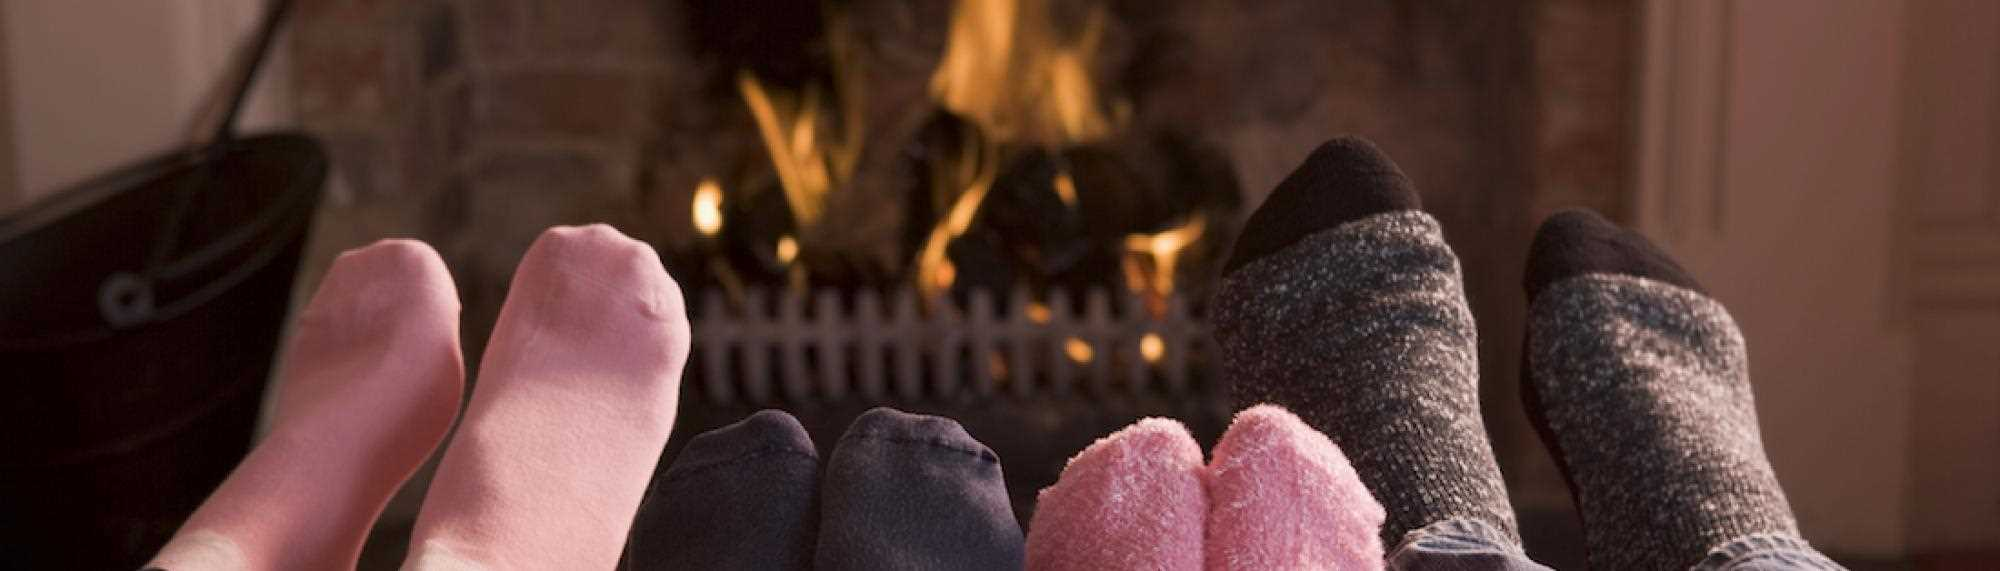 Stay warm this winter with our best burning fuel